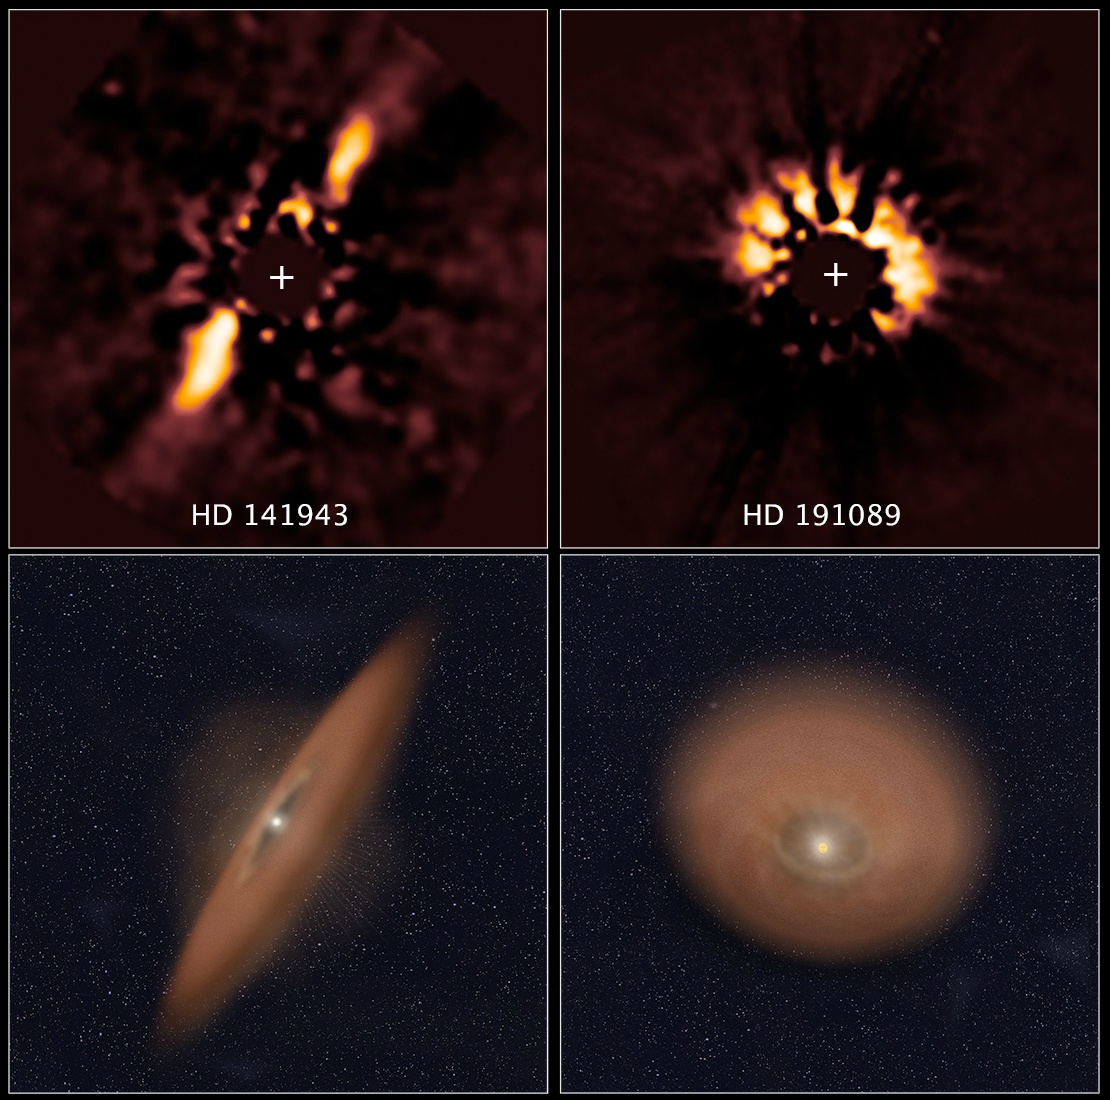 Some protoplanetary disks